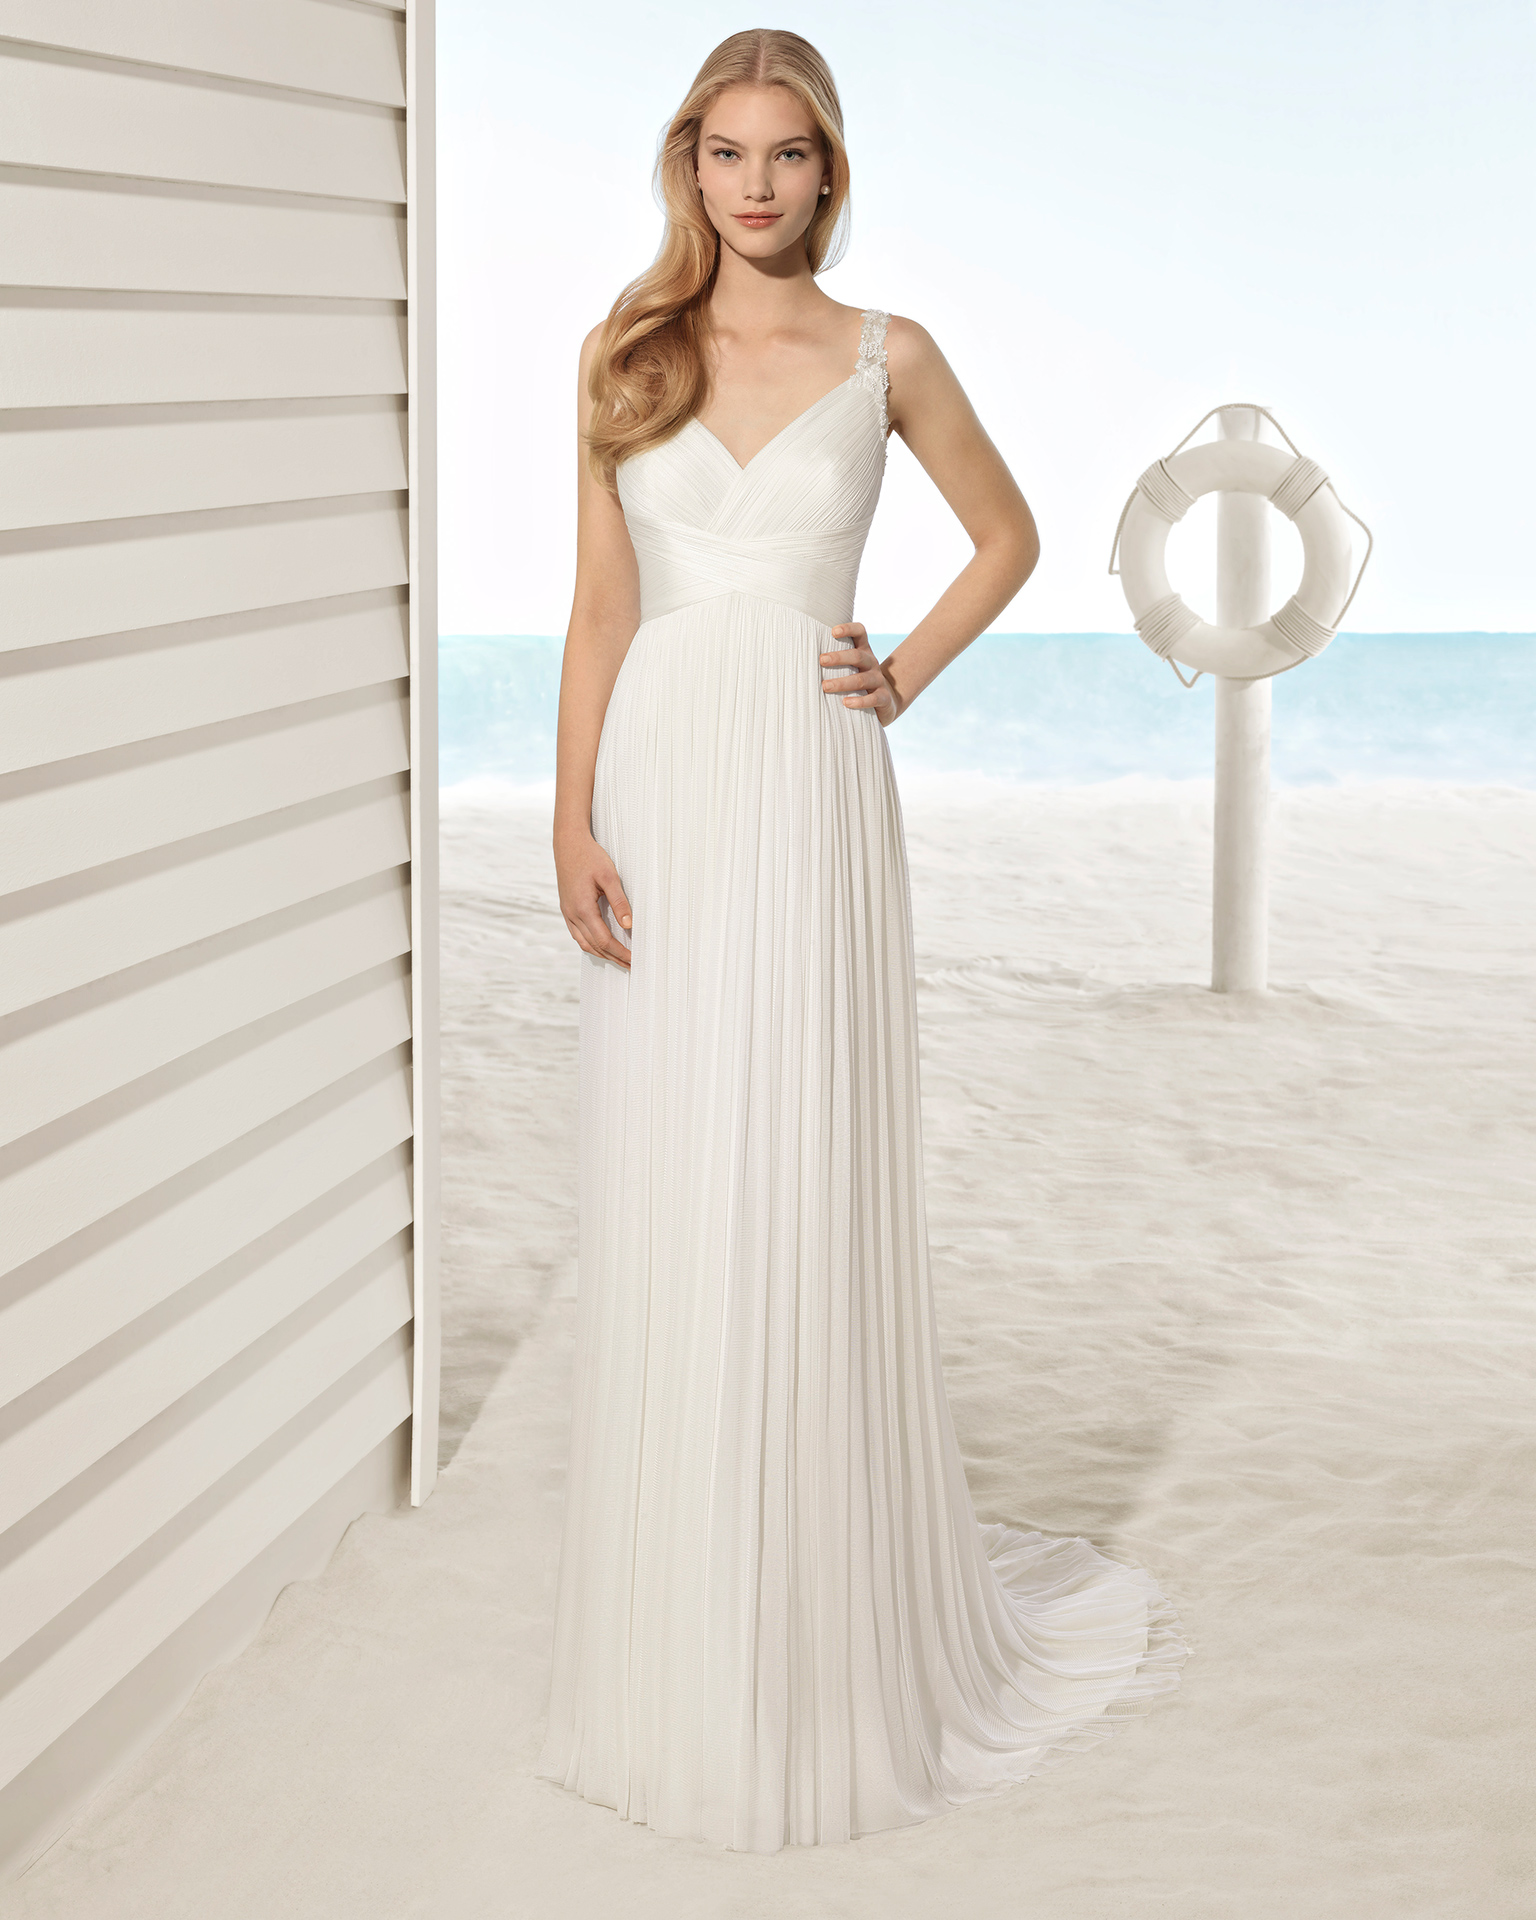 Boho-style silk mousseline wedding dress with crossover neckline and jeweled back.